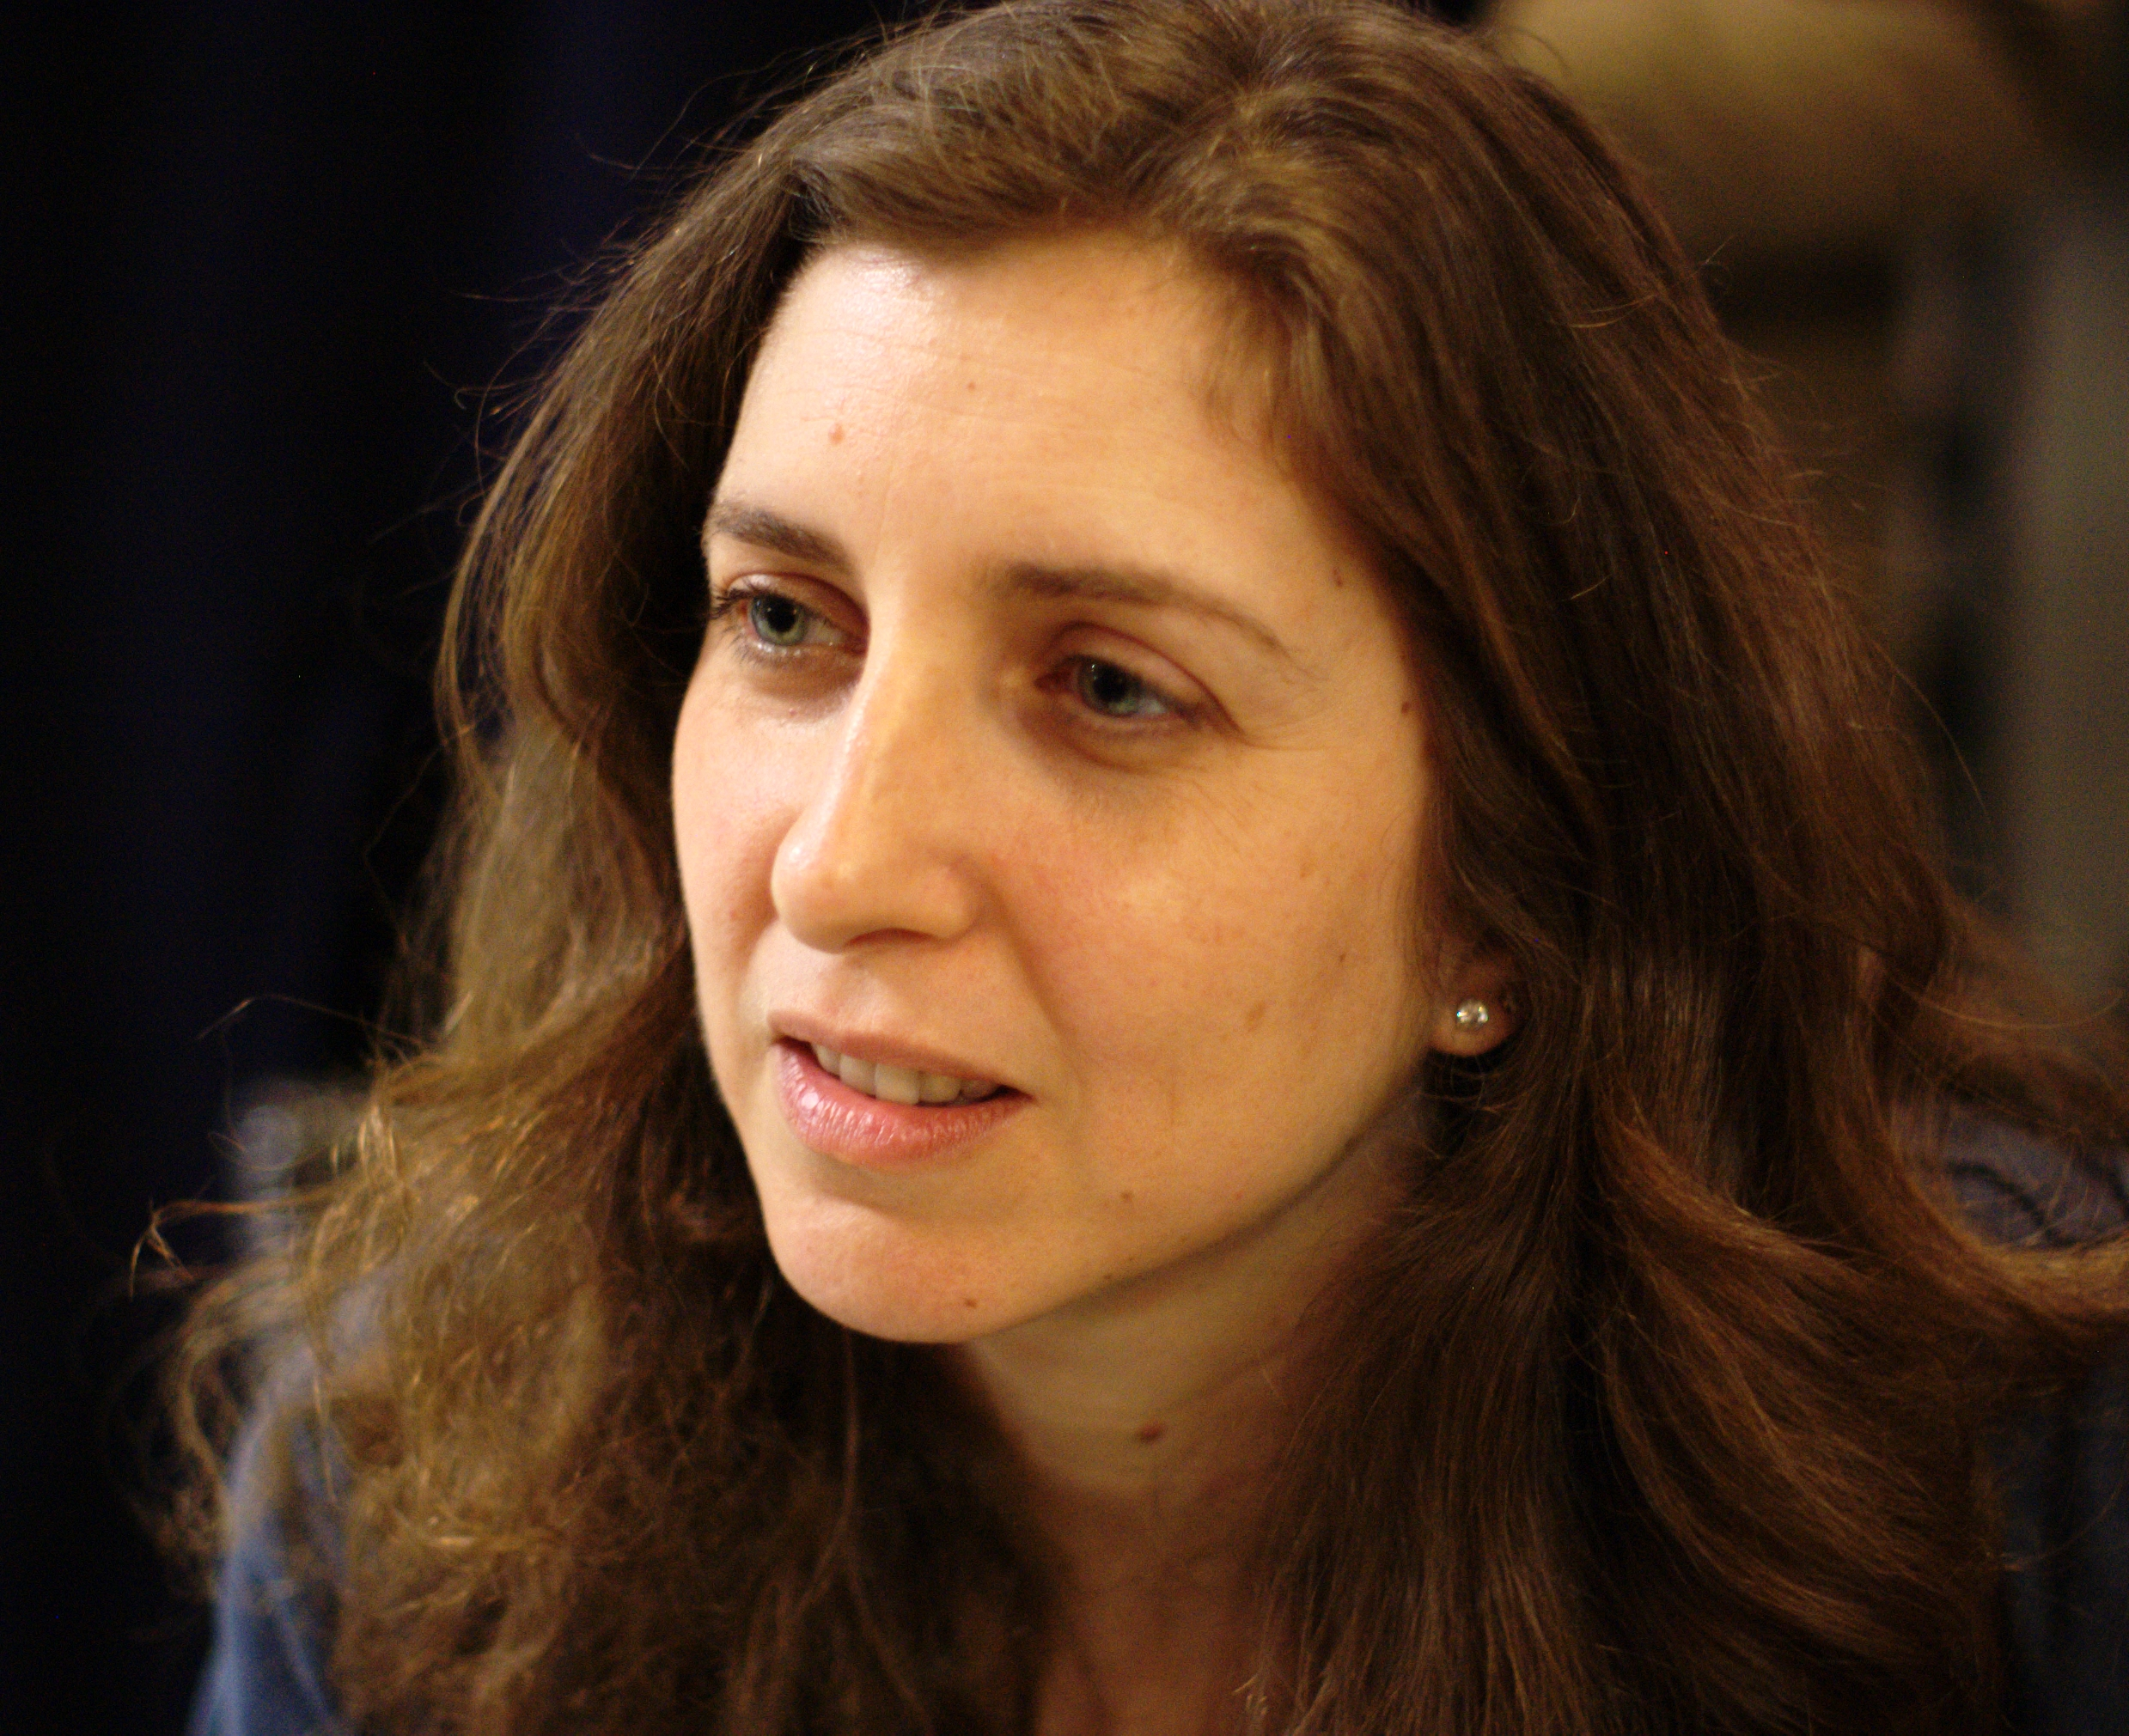 Image of Joana Hadjithomas from Wikidata